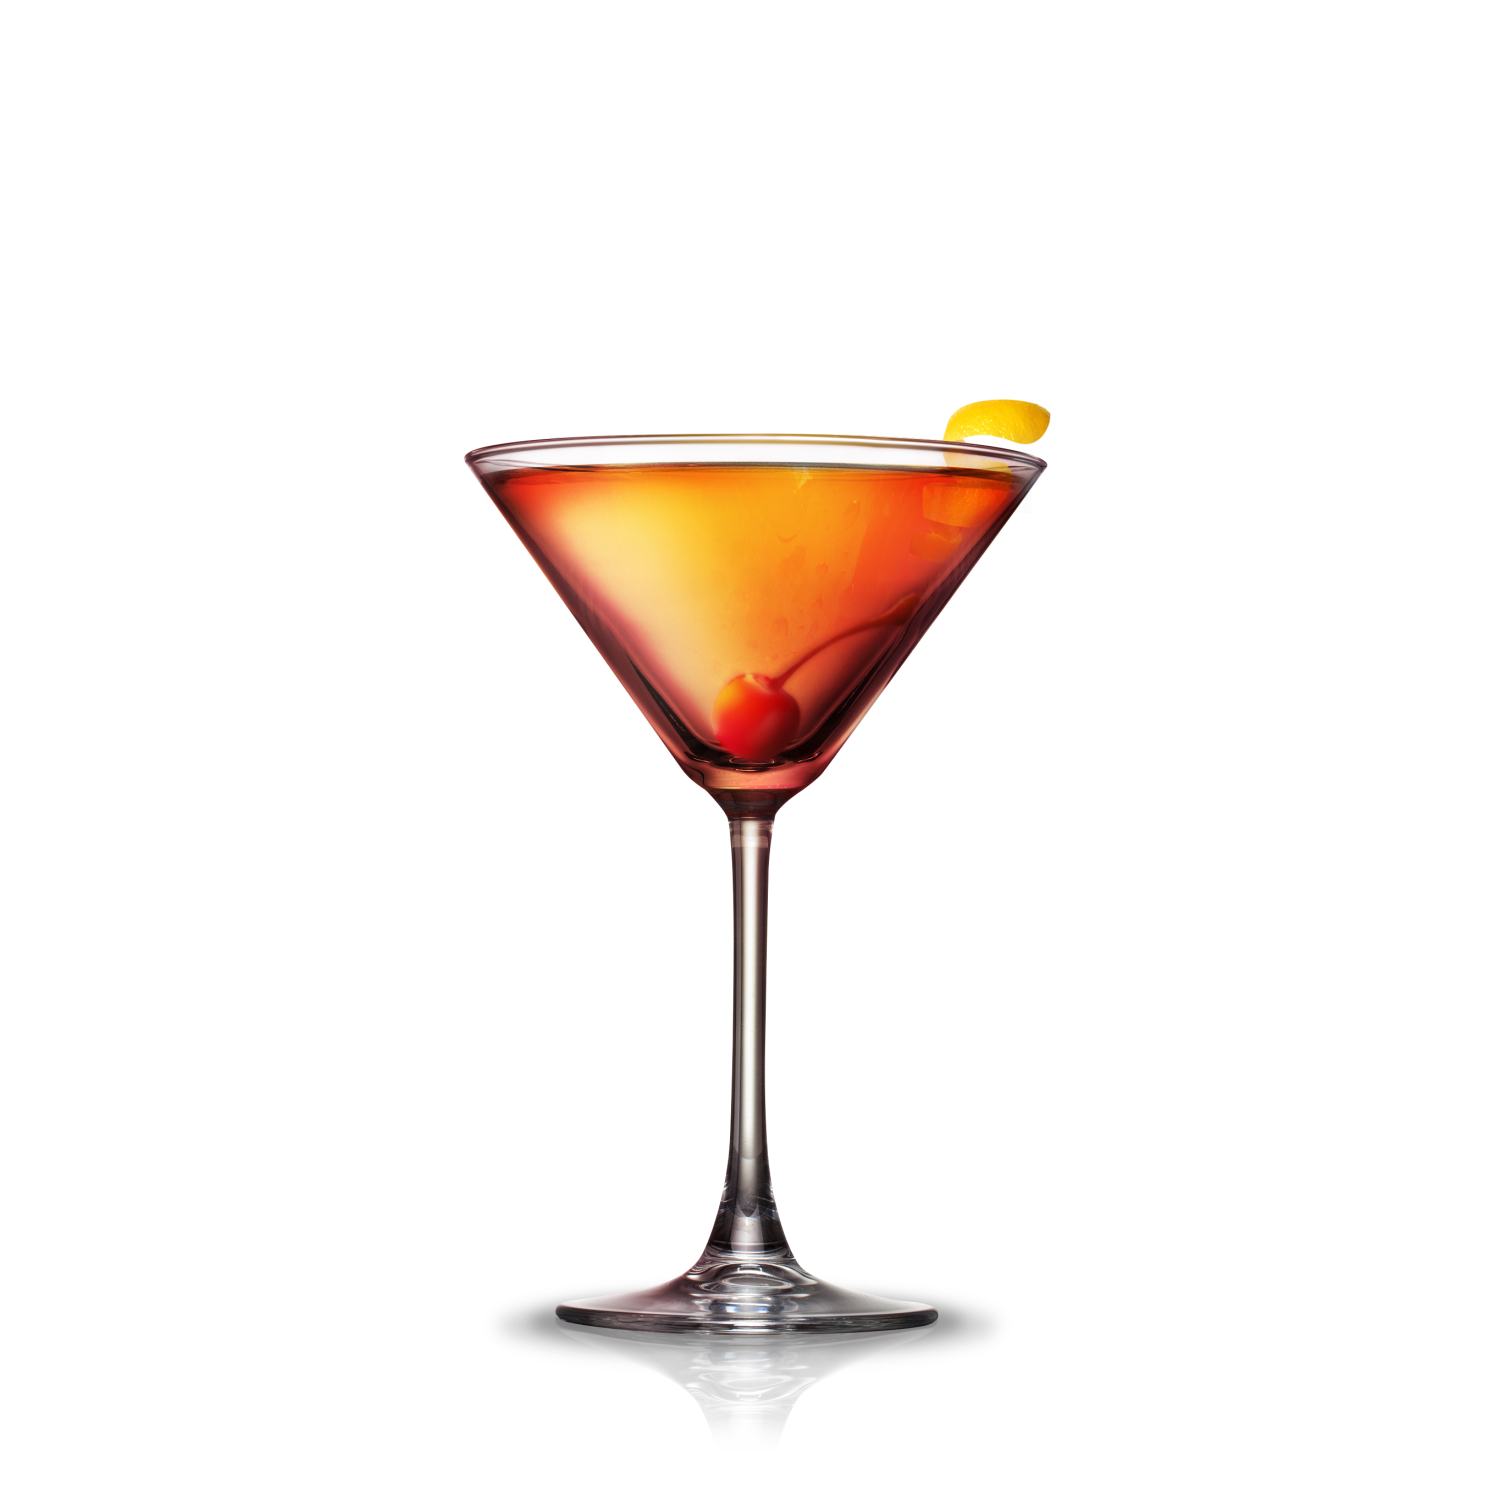 Cocktail Clipart Manhattan Cocktail Cocktail Manhattan Cocktail Transparent Free For Download On Webstockreview 2021